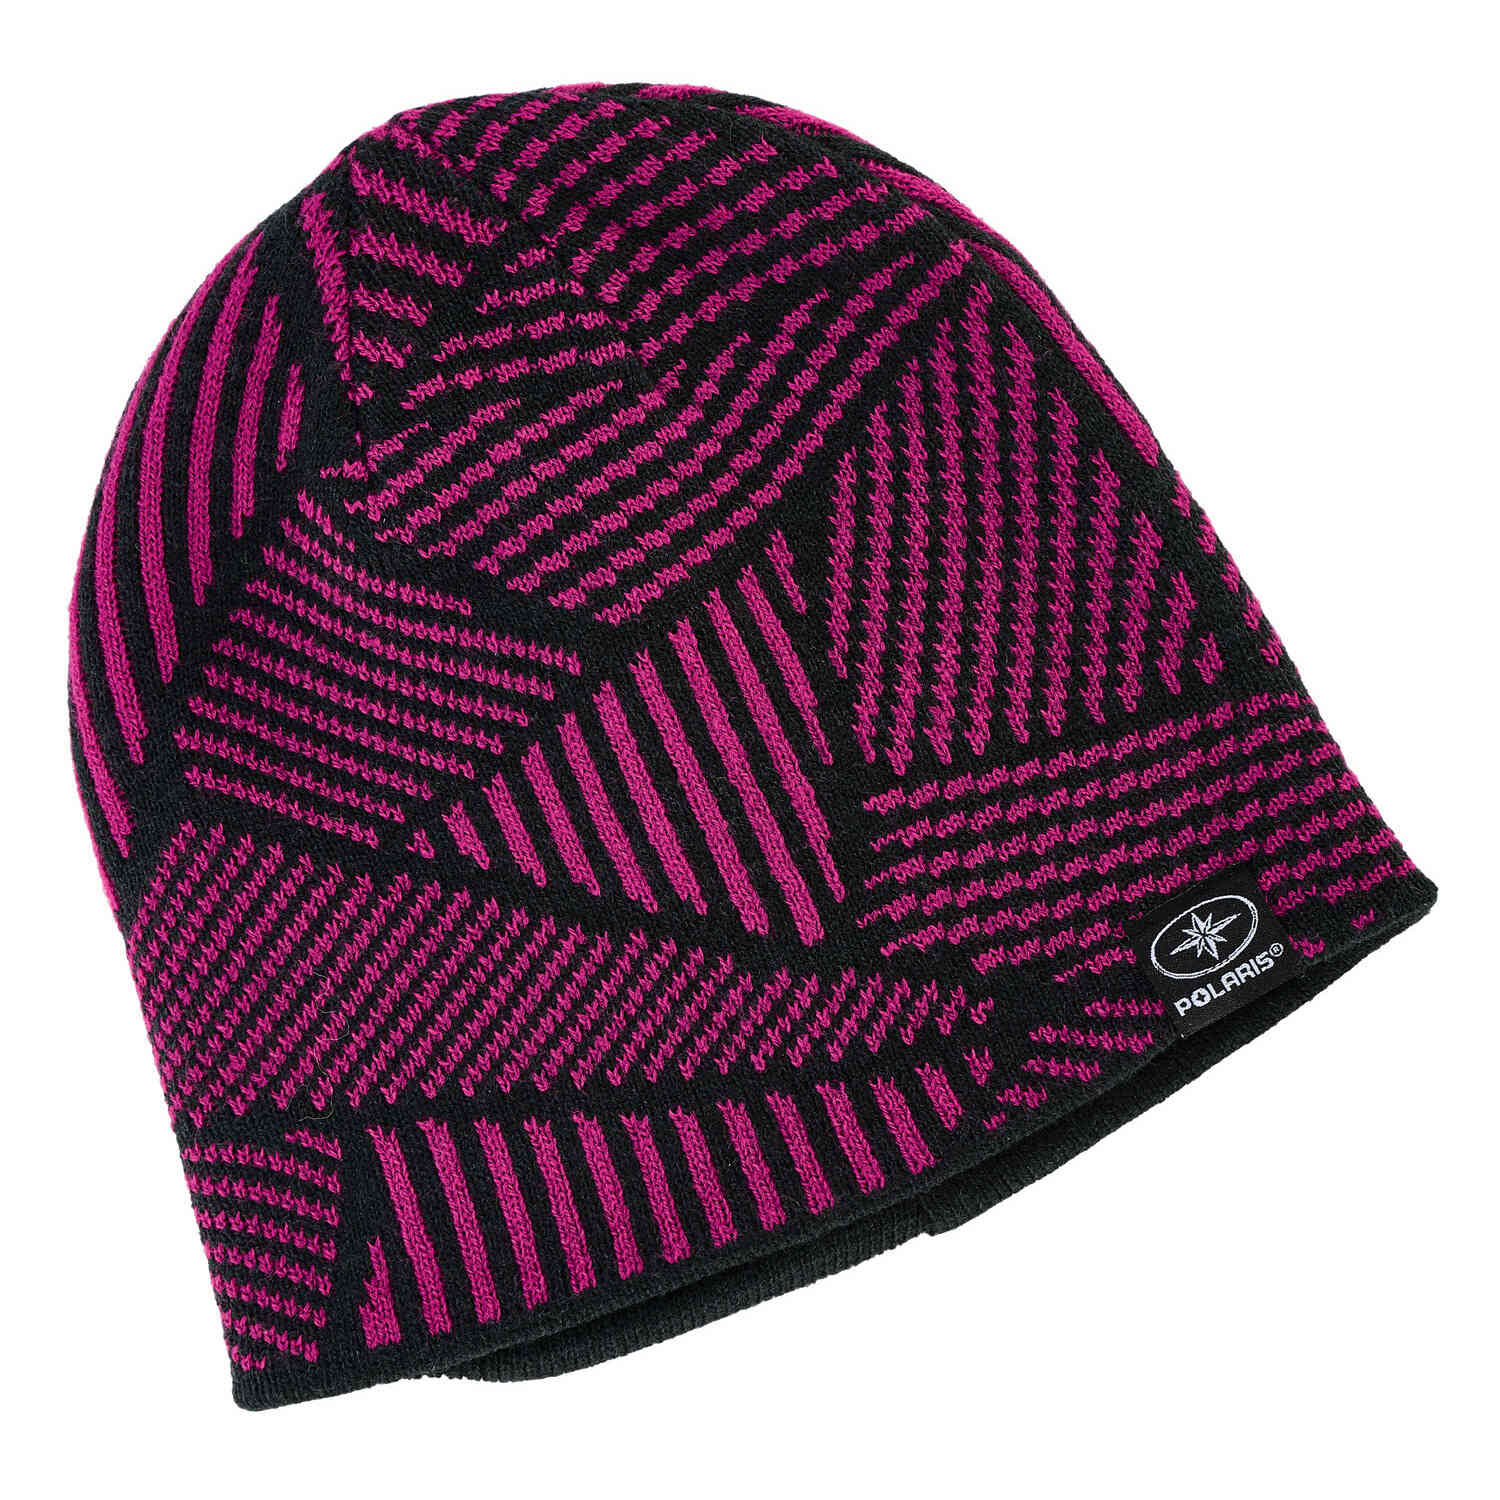 Youth Jersey Knit Reversible Beanie, Pink